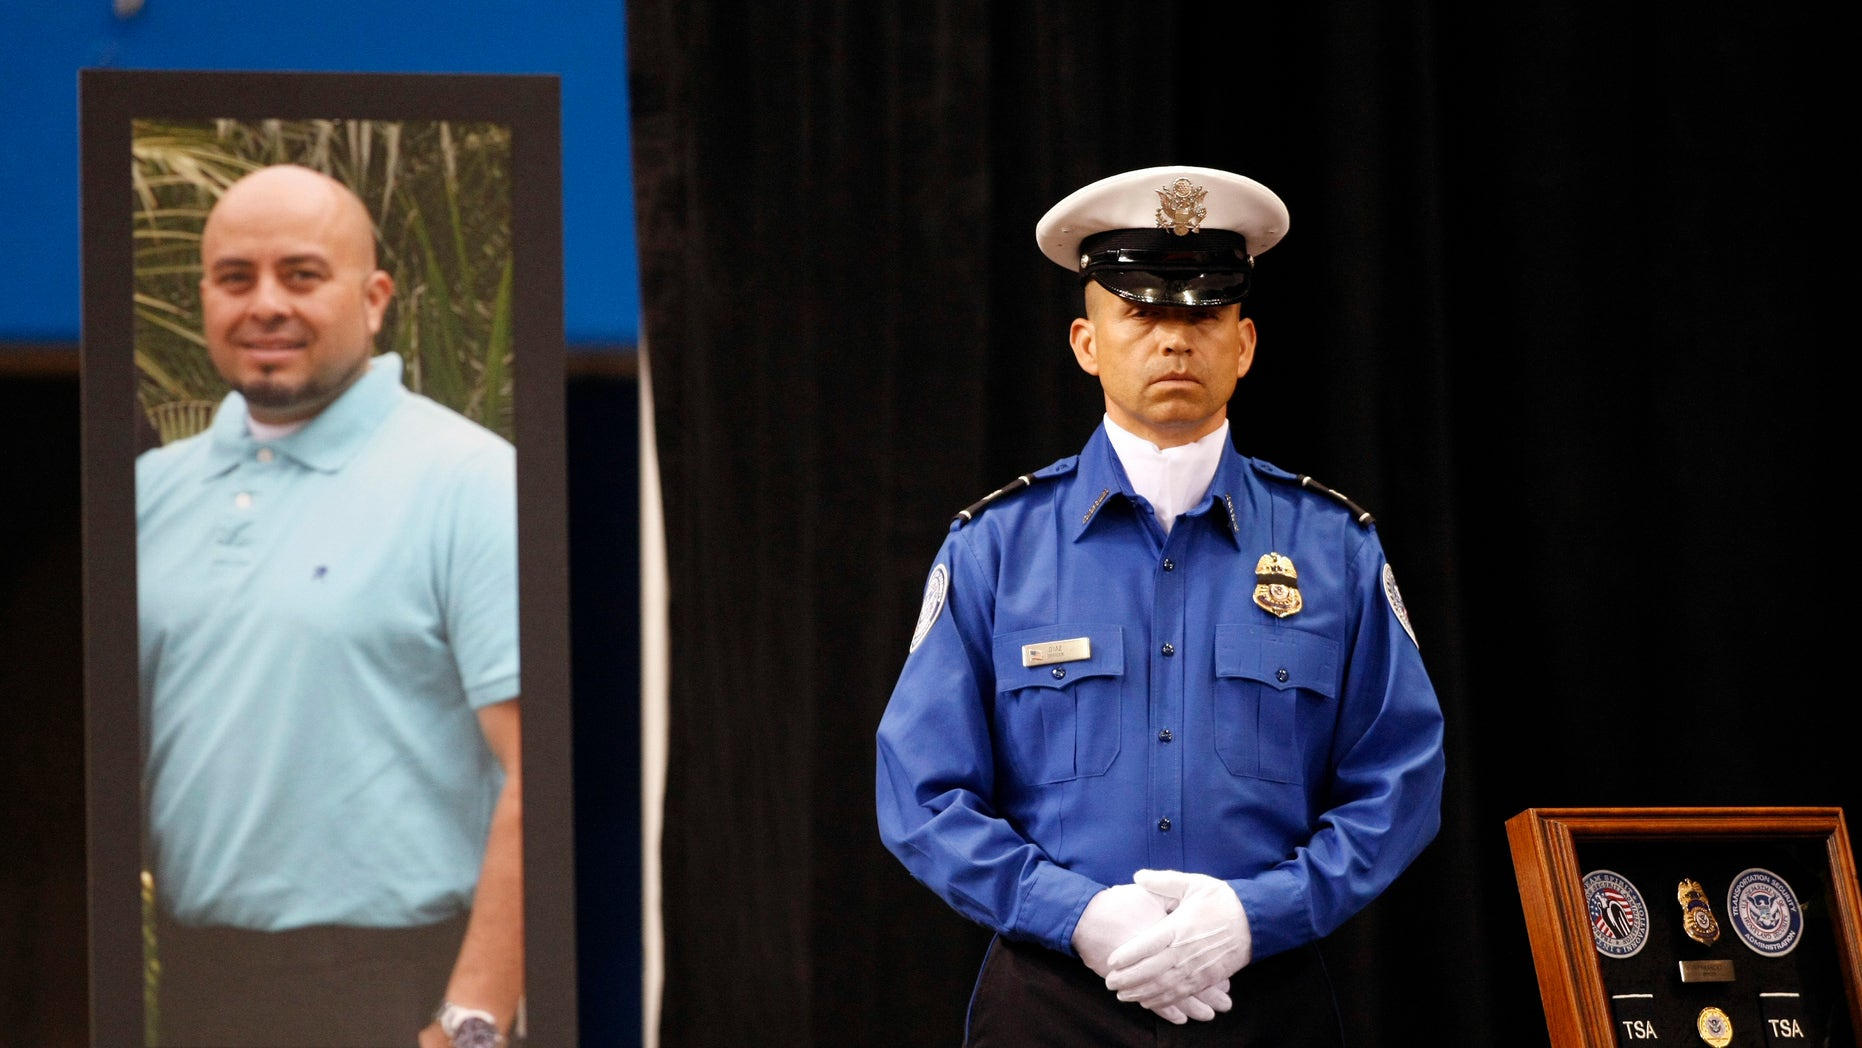 A TSA officer standS in front of a portrait of slain TSA officer Gerardo Hernandez during his public memorial at the Los Angeles Sports Arena, Tuesday, Nov. 12, 2013.